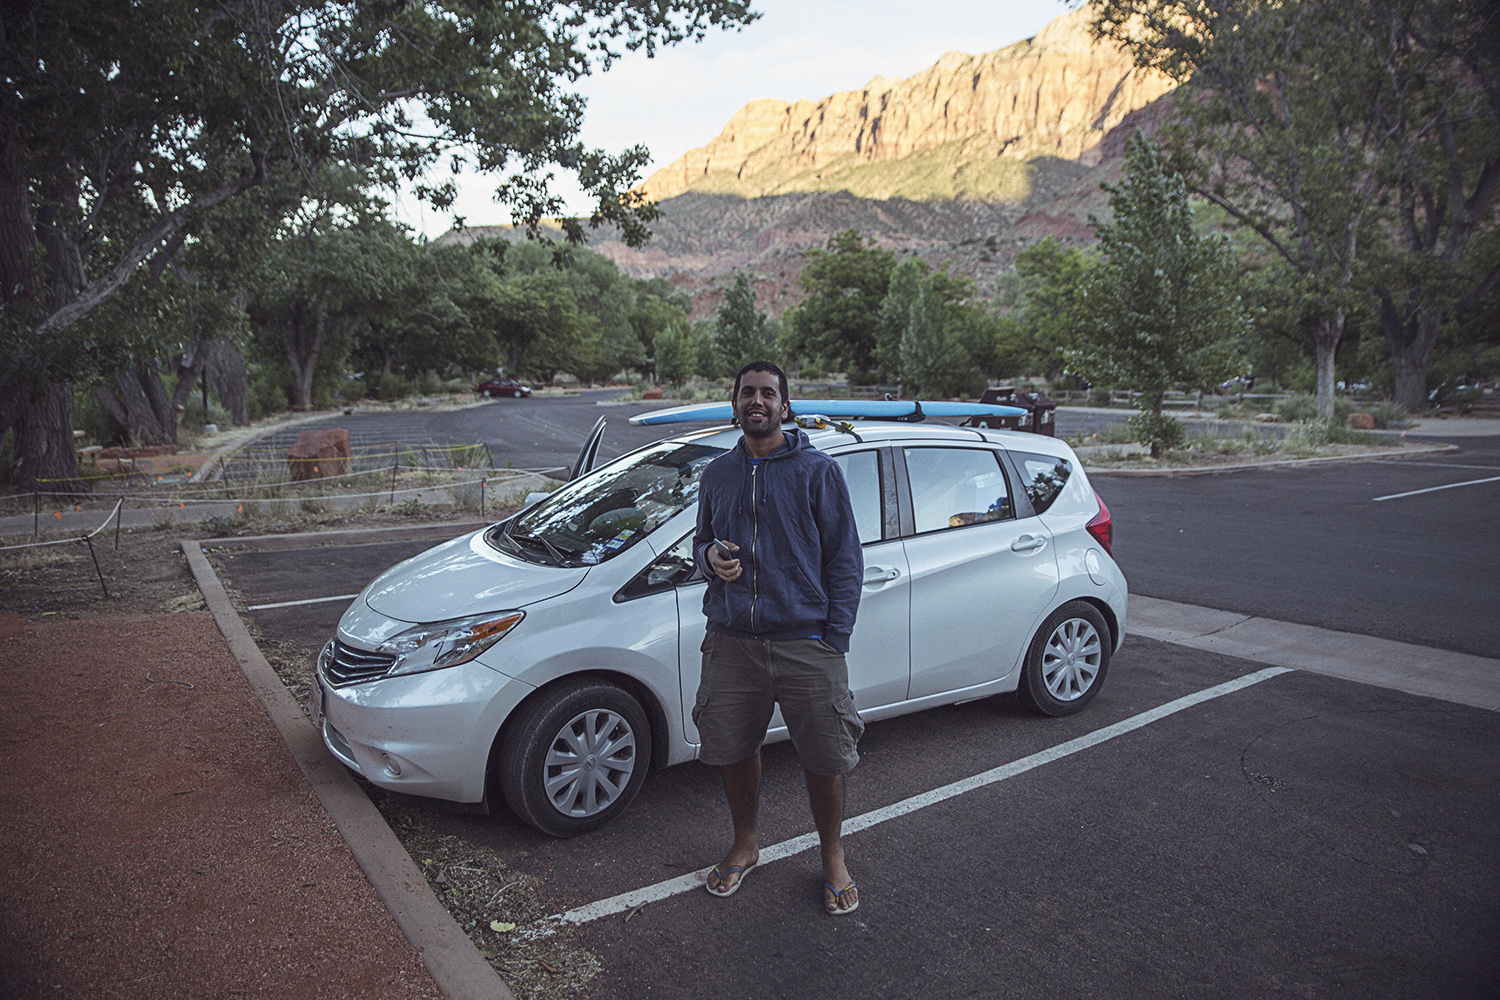 2017-06-08_Zion_Nationalpark_004.jpg